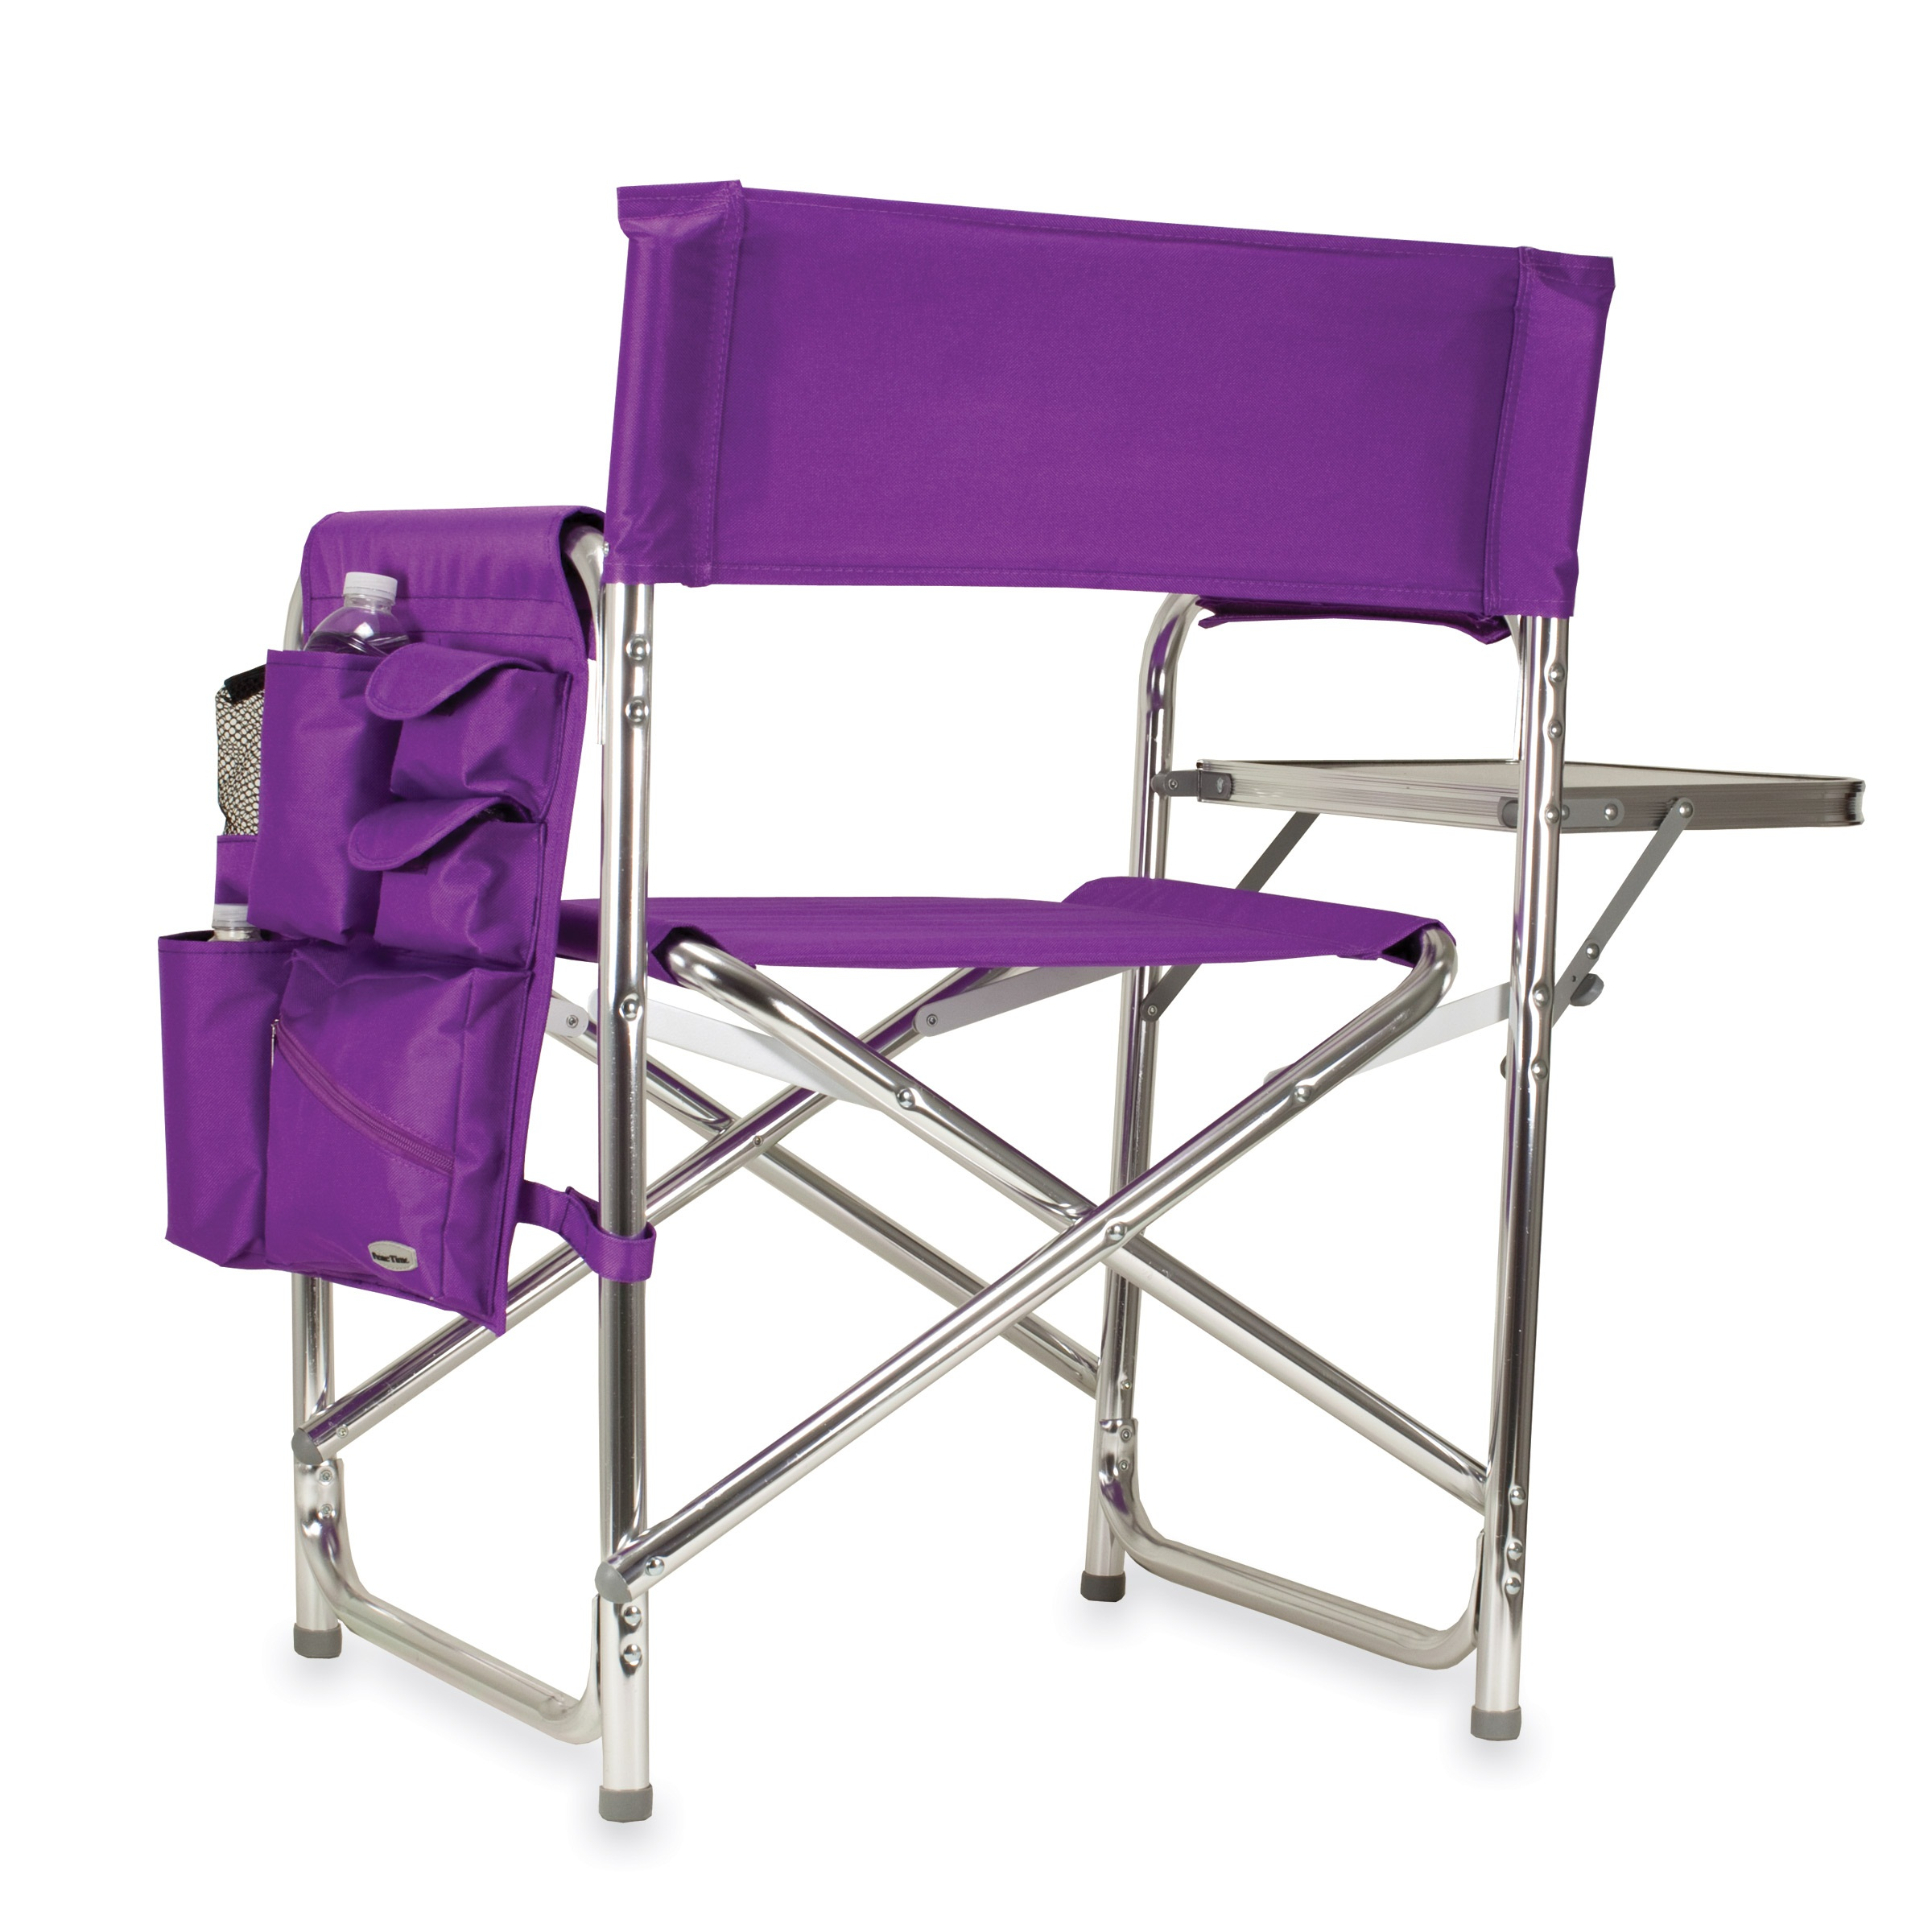 Picnic Chair Picnic Time Purple Portable Folding Sports Camping Chair